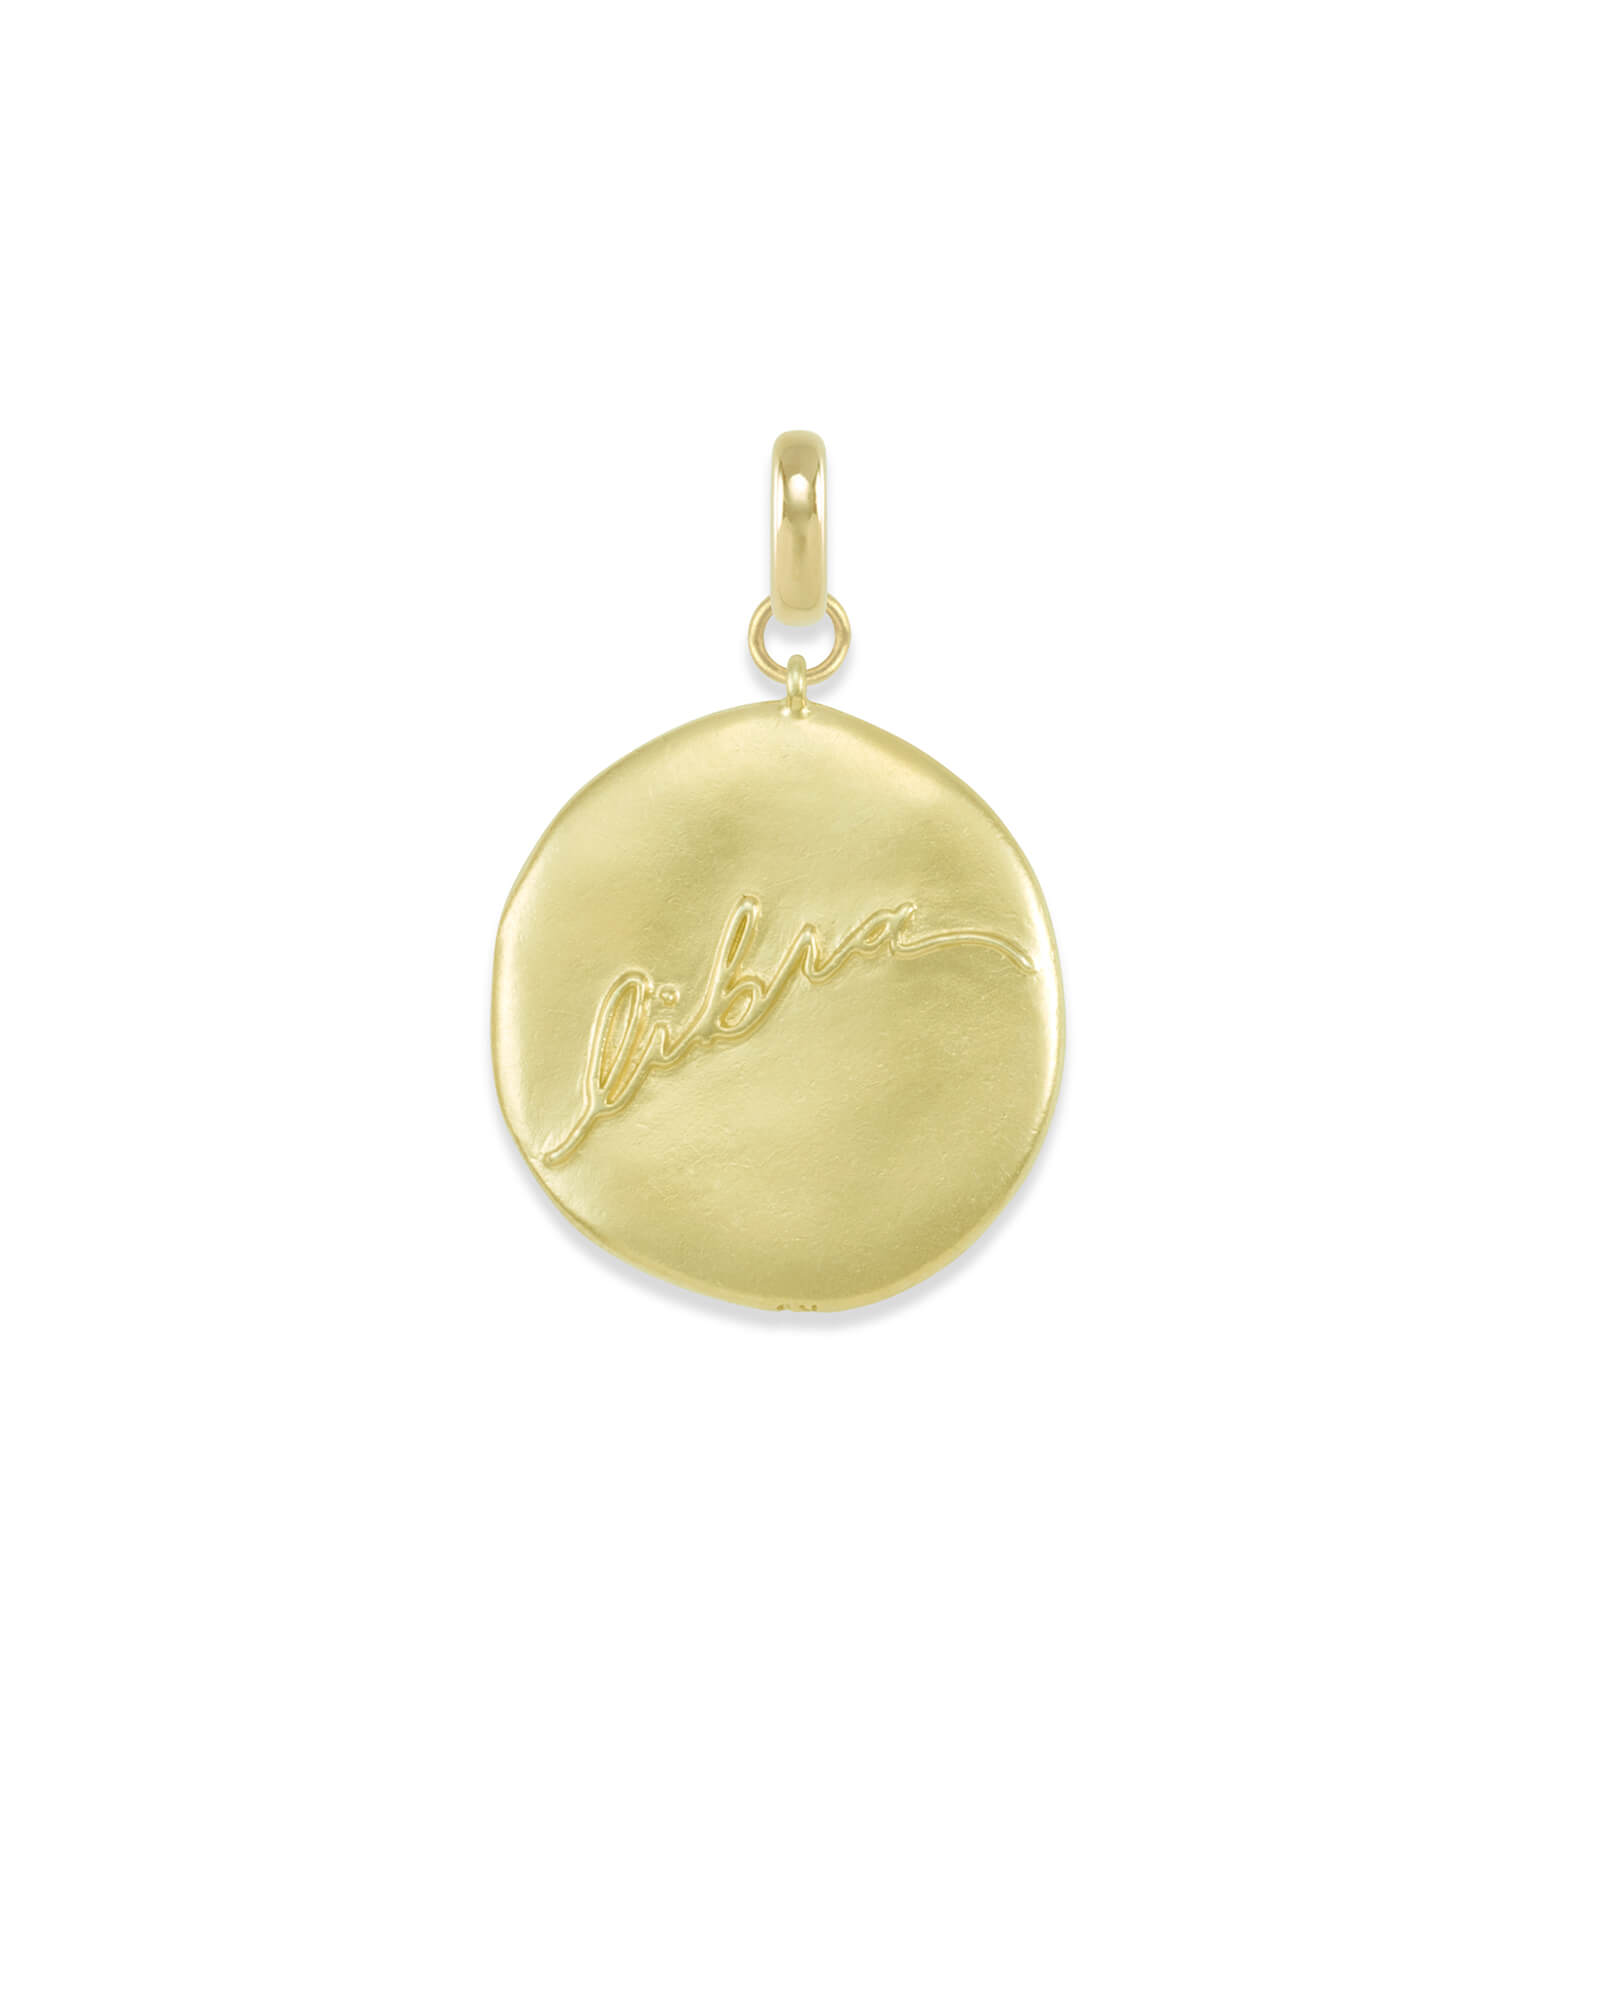 Libra Coin Charm in Gold